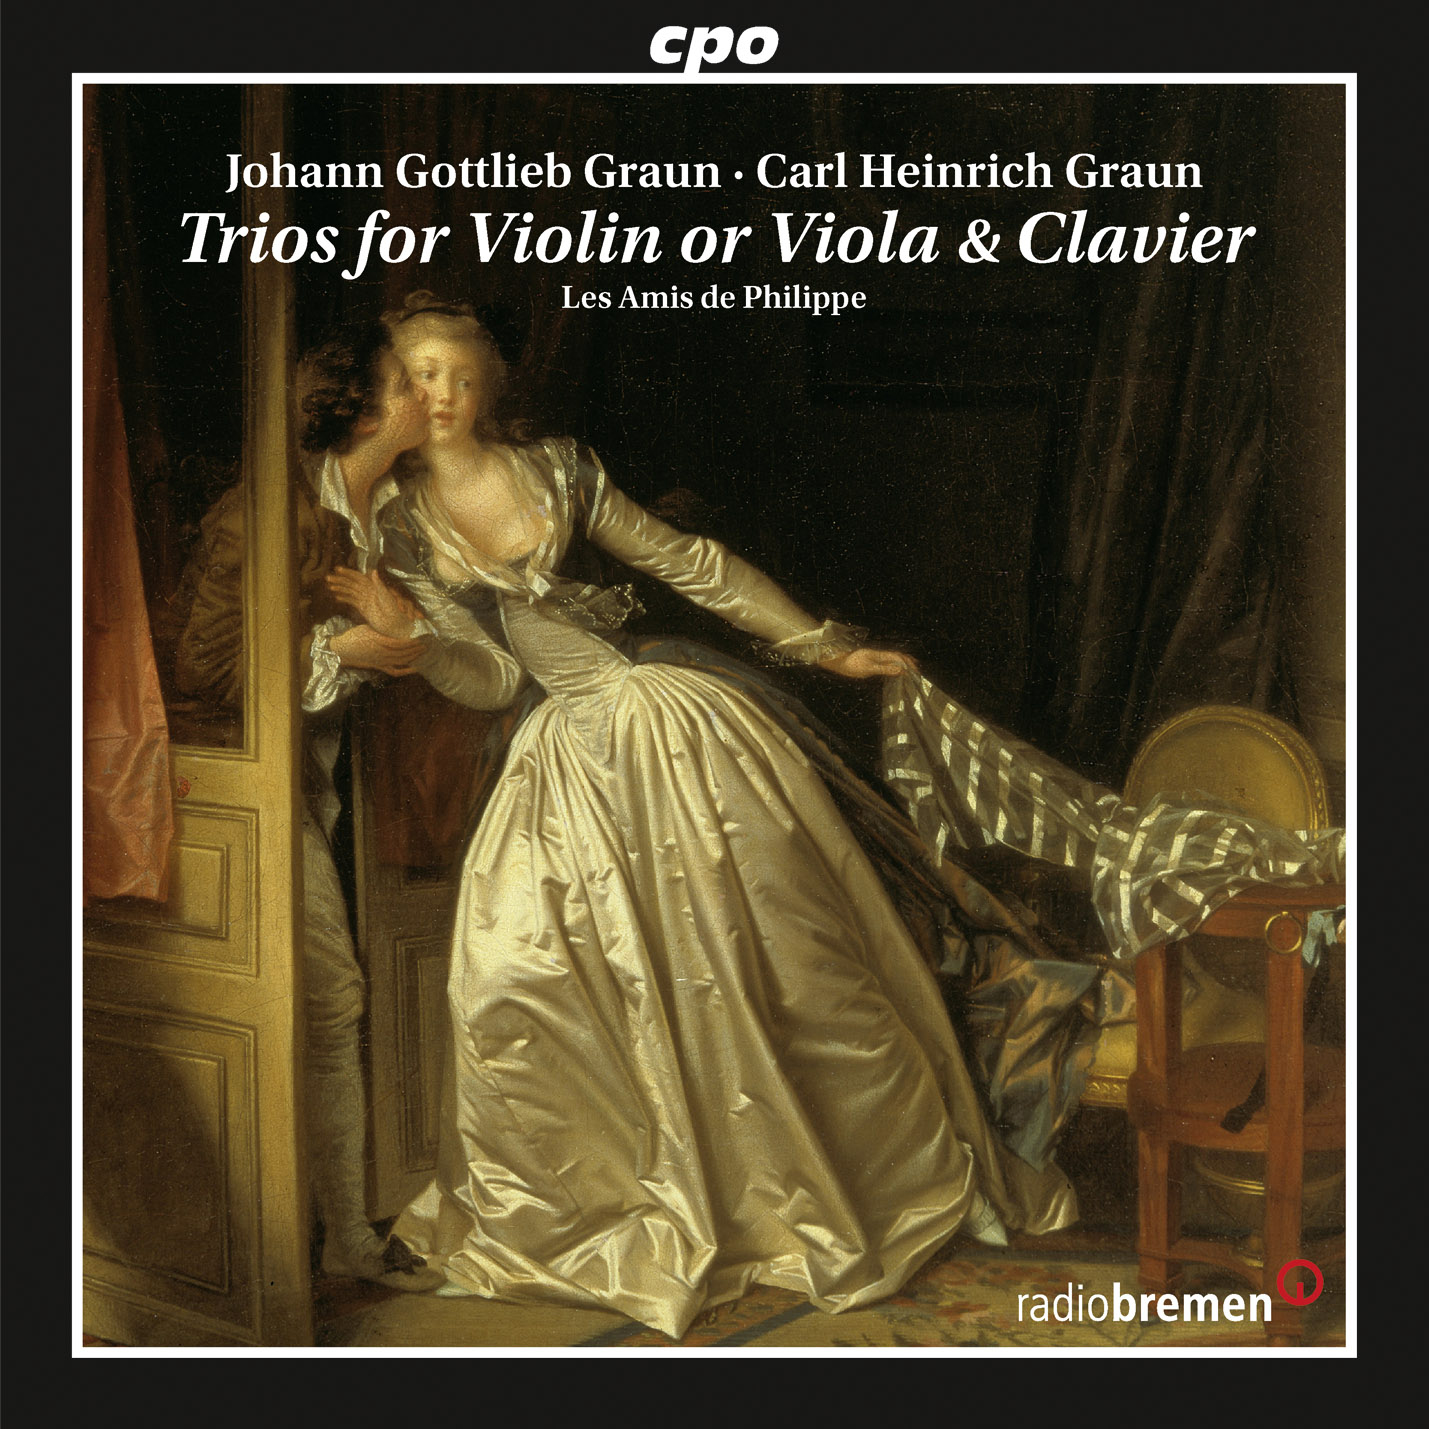 Trio in B-Flat Major, GraunWV A:XV:16, Trio in B-Flat Major, GraunWV A:XV:16: I. Adagio